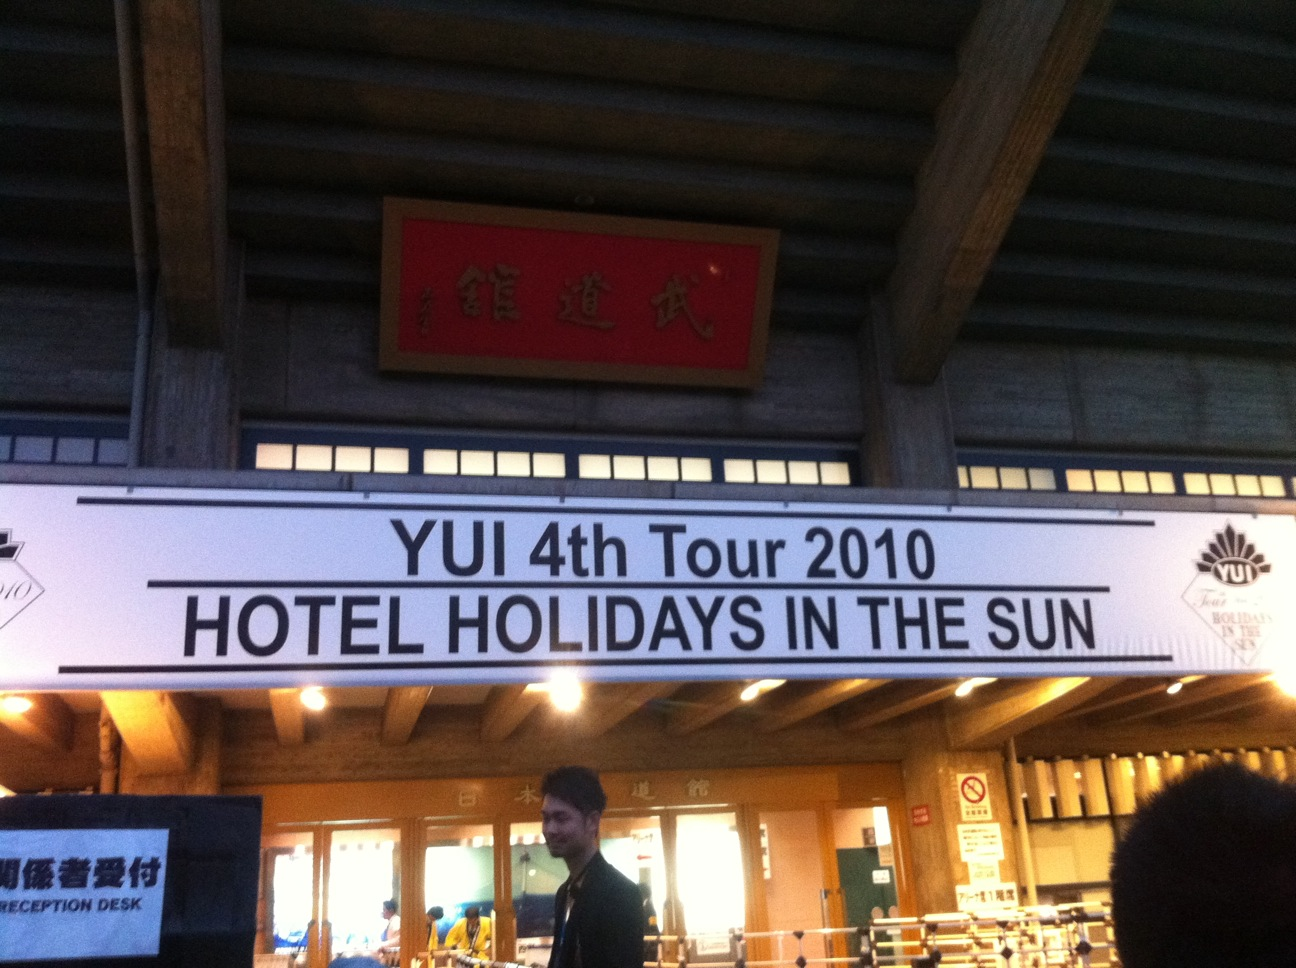 YUI 4th Tour 2010ファイナル ~HOTEL HOLIDAYS IN THE SUN~_f0020643_23211928.jpg